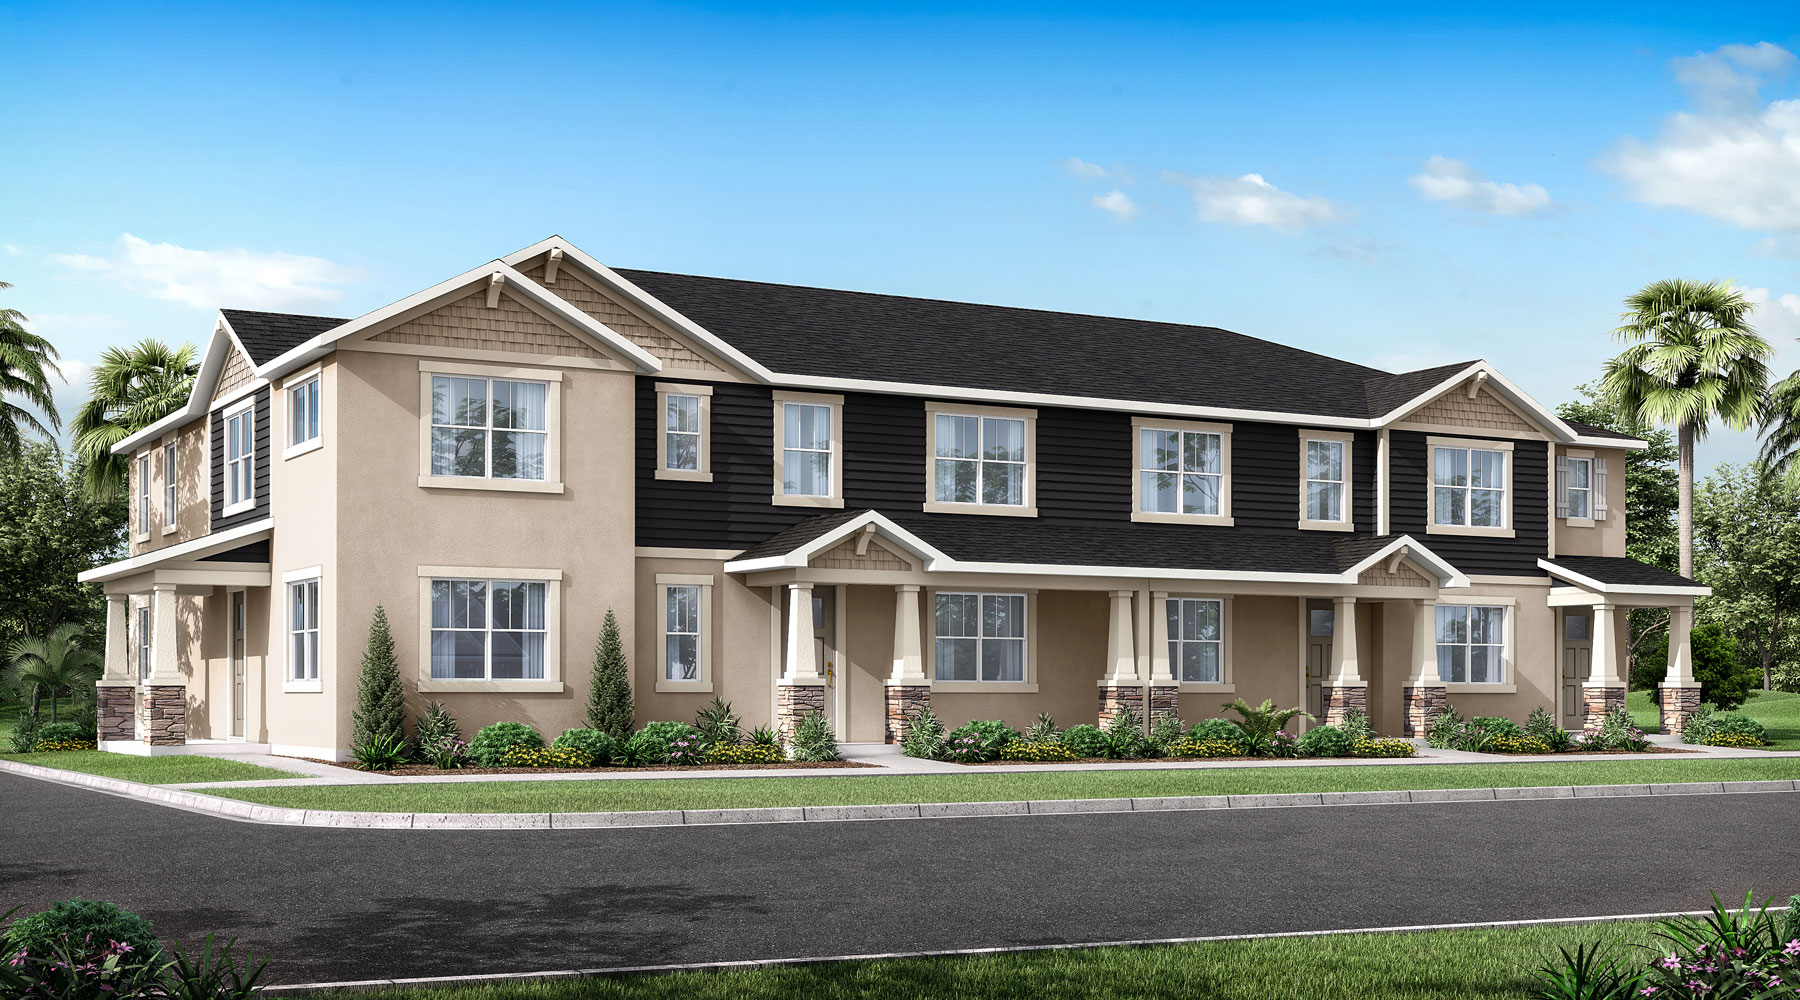 Catalina Plan TownHomes at Meridian Parks in Orlando Florida by Mattamy Homes